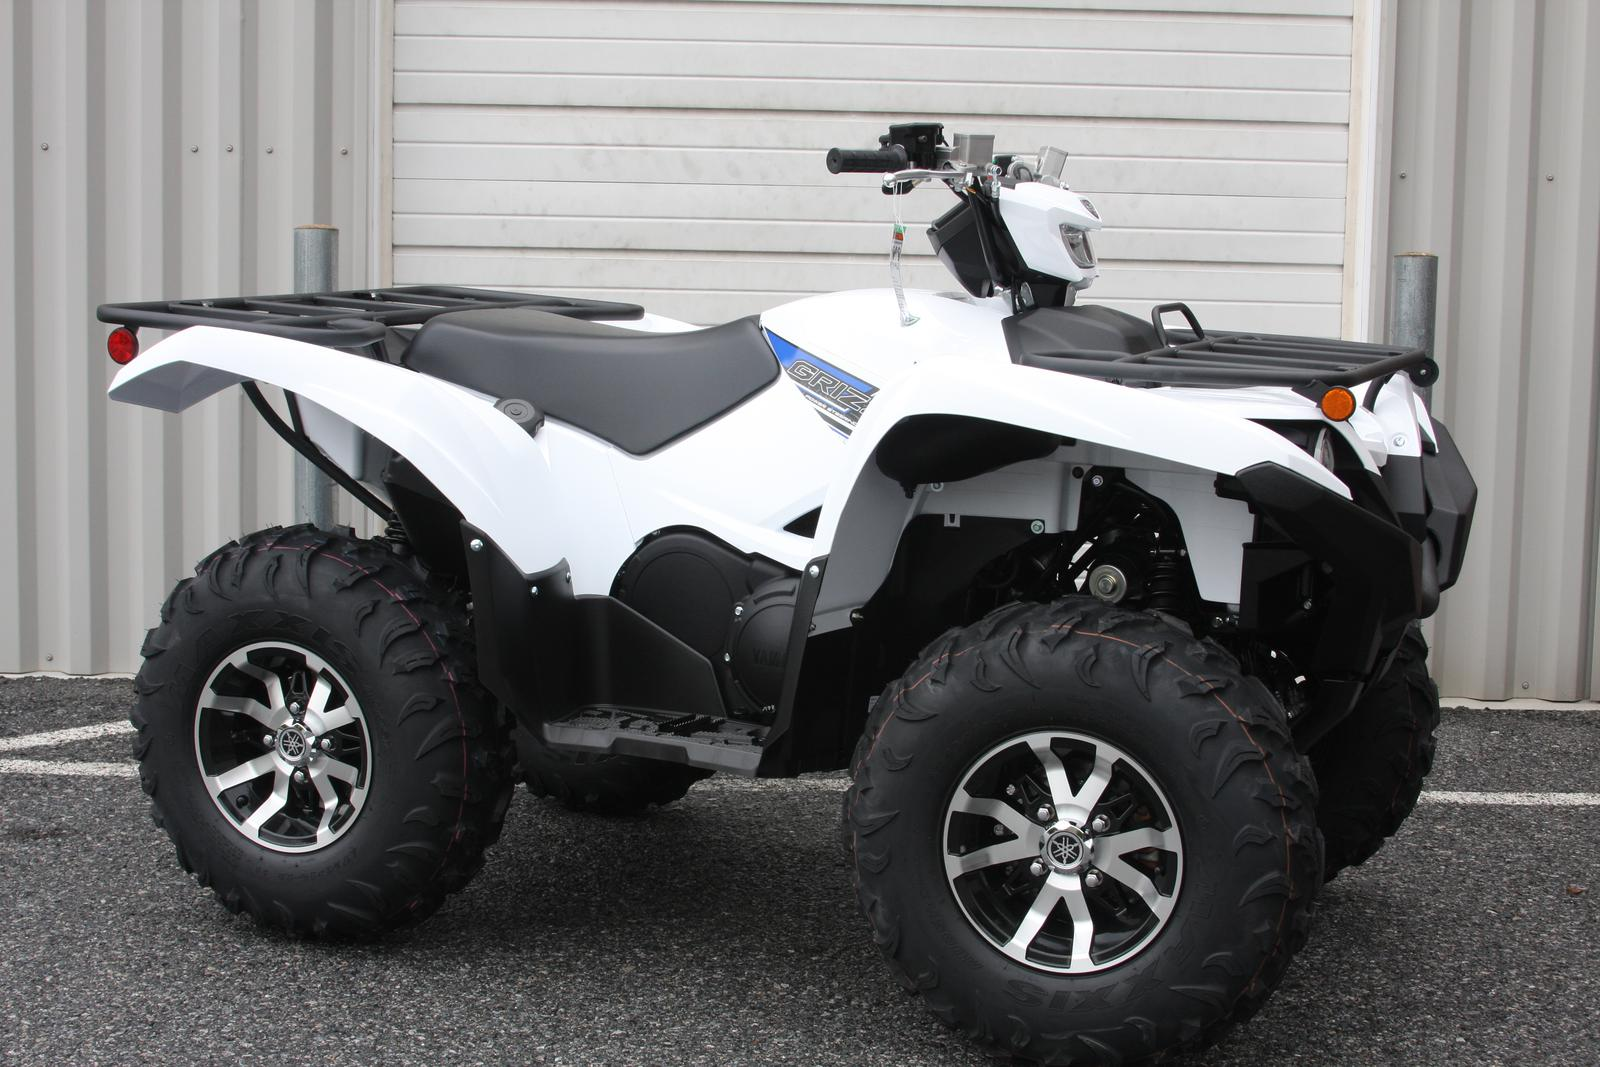 Yamaha Grizzly 700 >> 2019 Yamaha Grizzly 700 Eps For Sale In York Pa Ams Action